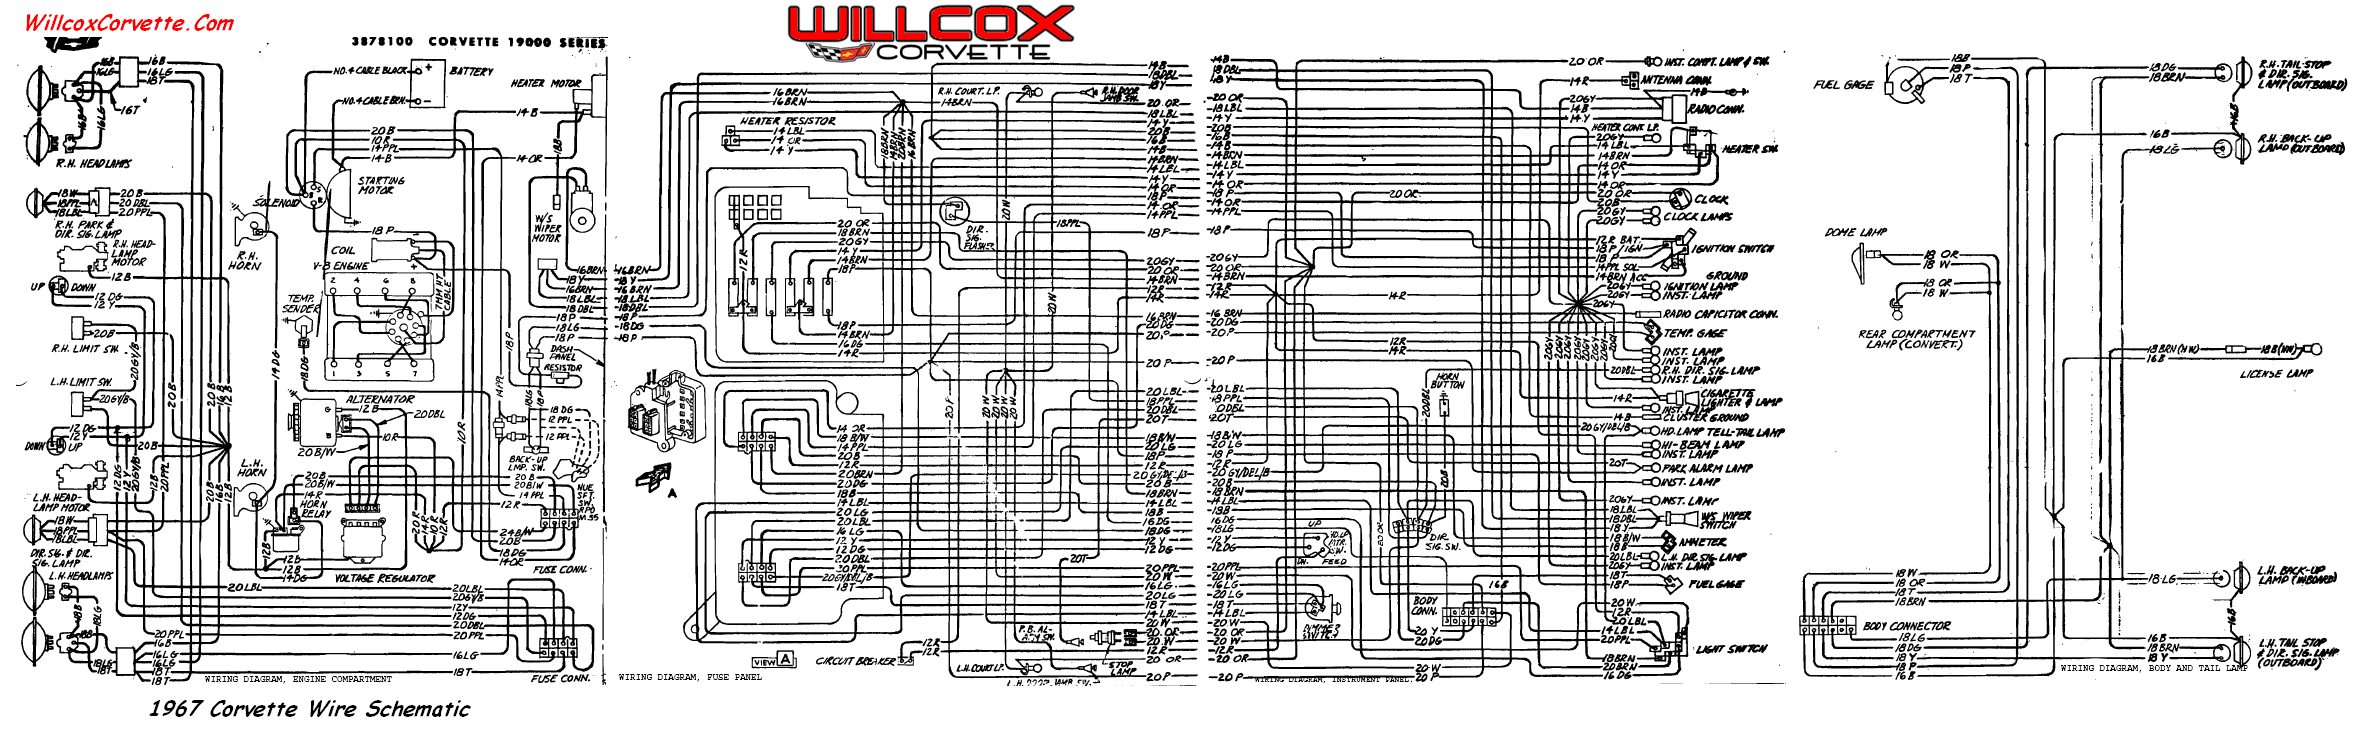 67 wire schematic for tracing wires 1967 corvette wiring diagram (tracer schematic) willcox corvette c3 corvette wiring diagram at panicattacktreatment.co